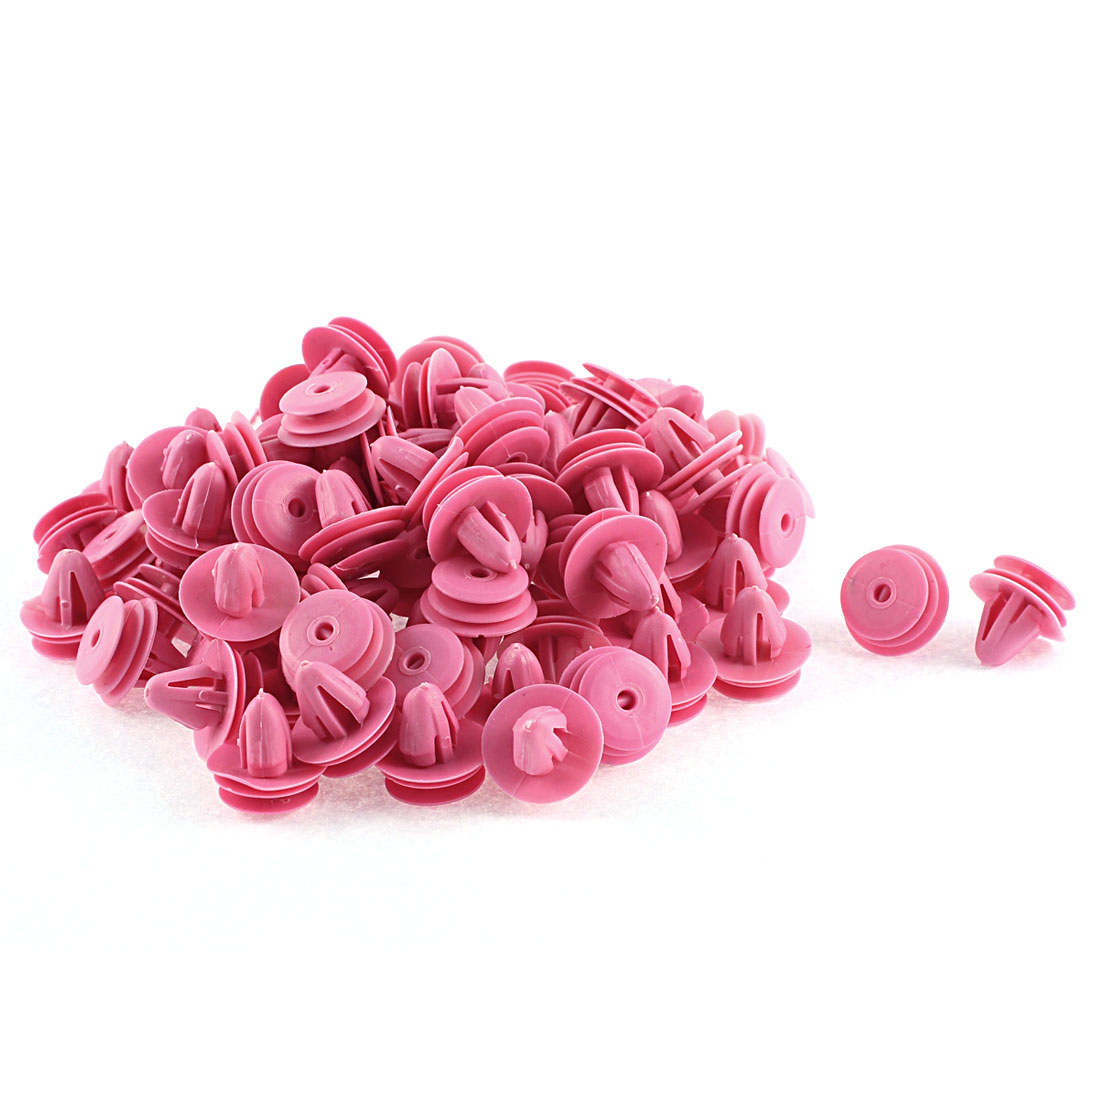 Unique Bargains 100 Pcs 10mm x 7.5mm Hole Fuchsia Plastic Rivets Fastener for Hyundai Elantra